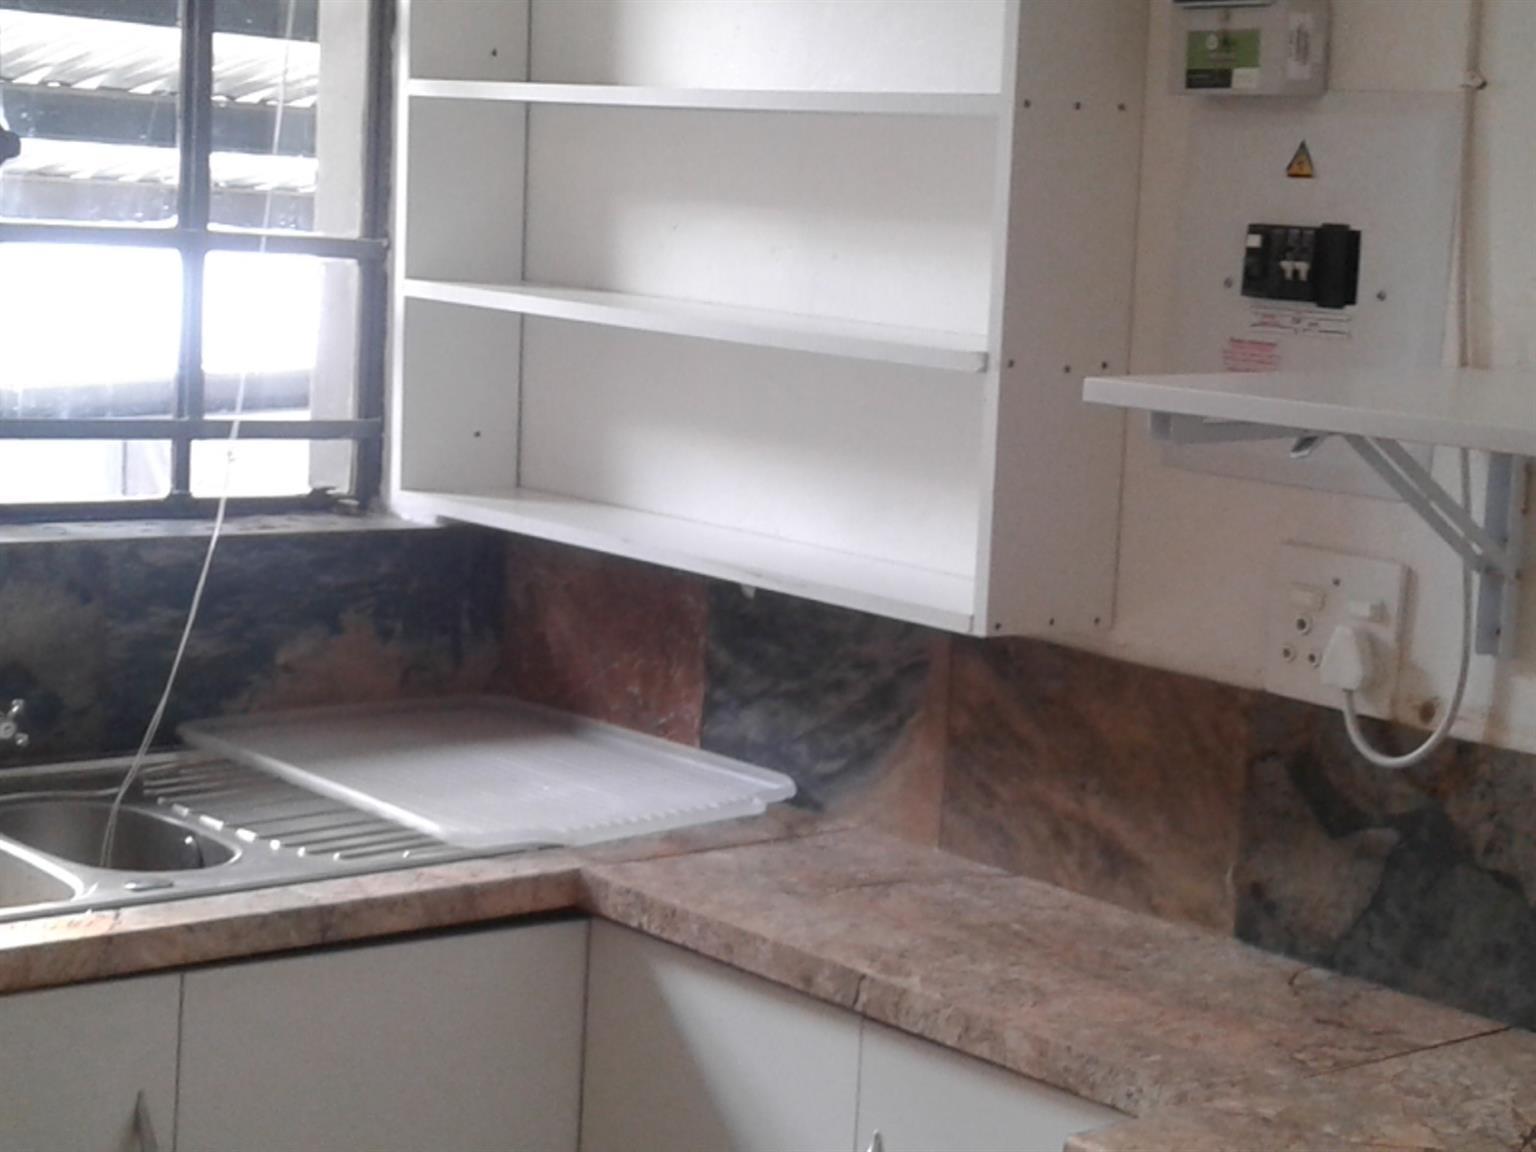 BACHELOR GARDEN FLAT R3200 PER MONTH, STUDENTS, SINGLE PARENT WITH CHILD, AFFORDABLE